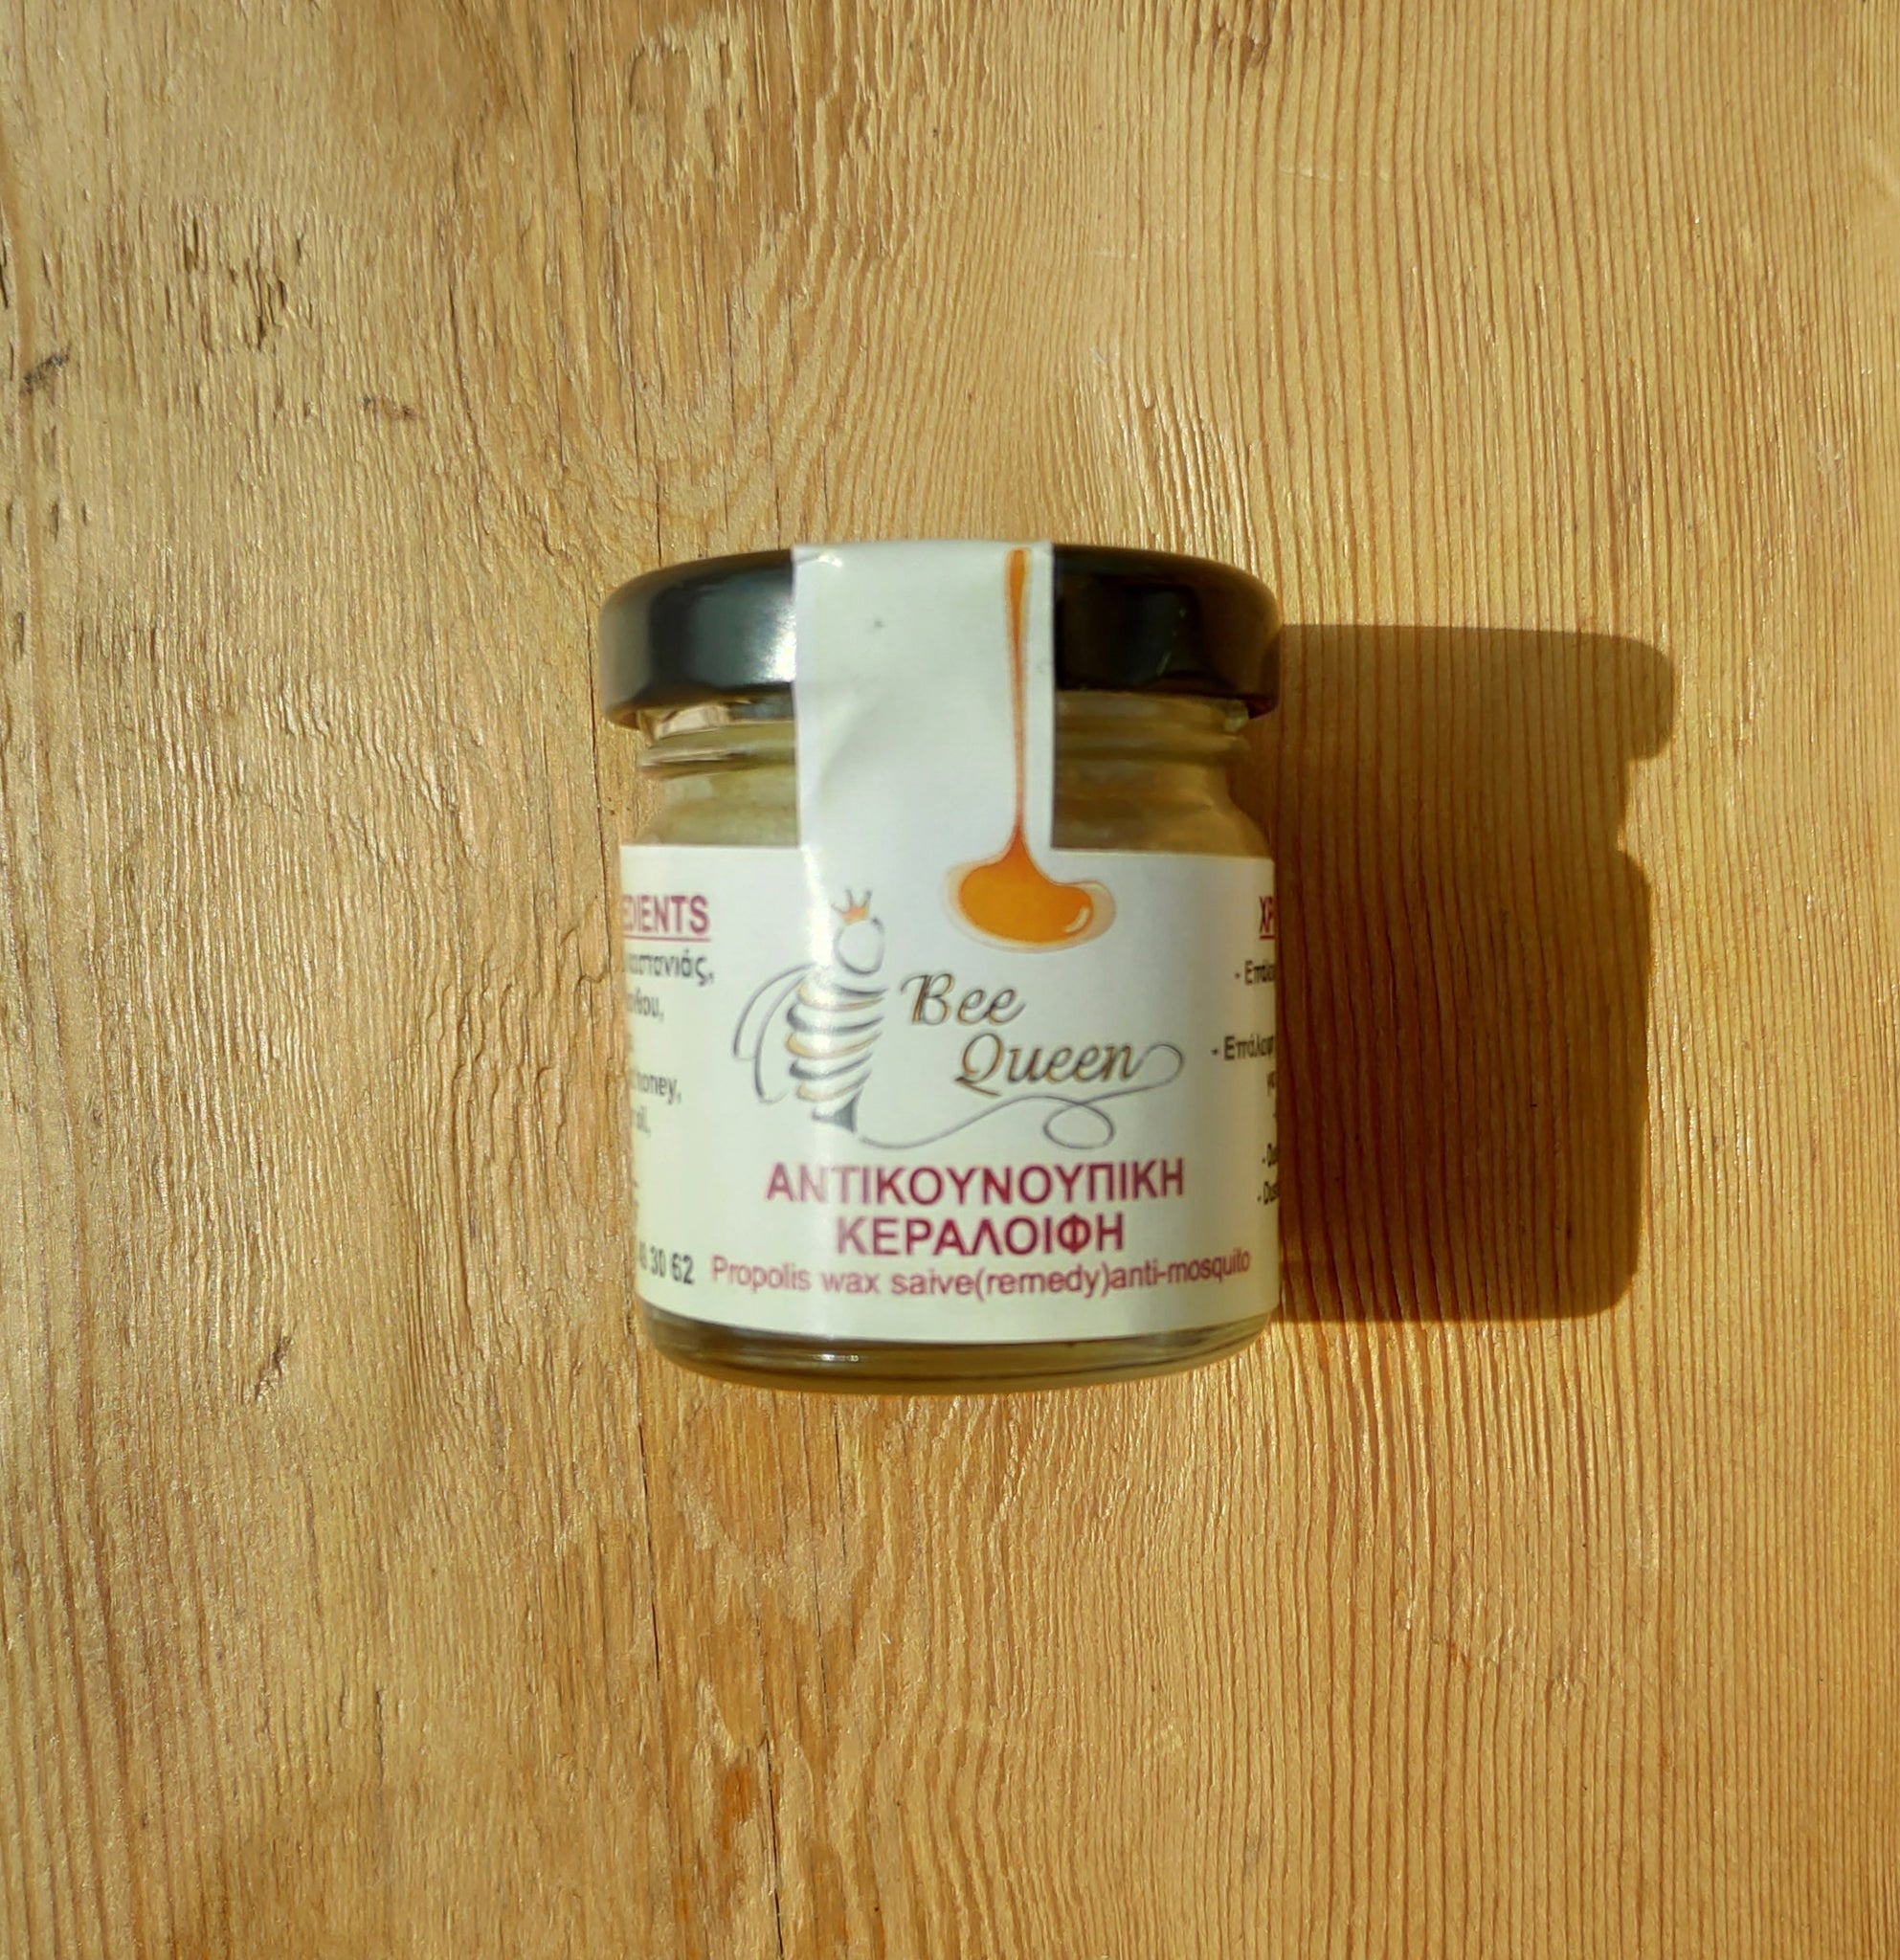 MOSQUITO Repellent Beeswax and Propolis Cream by BEE QUEEN